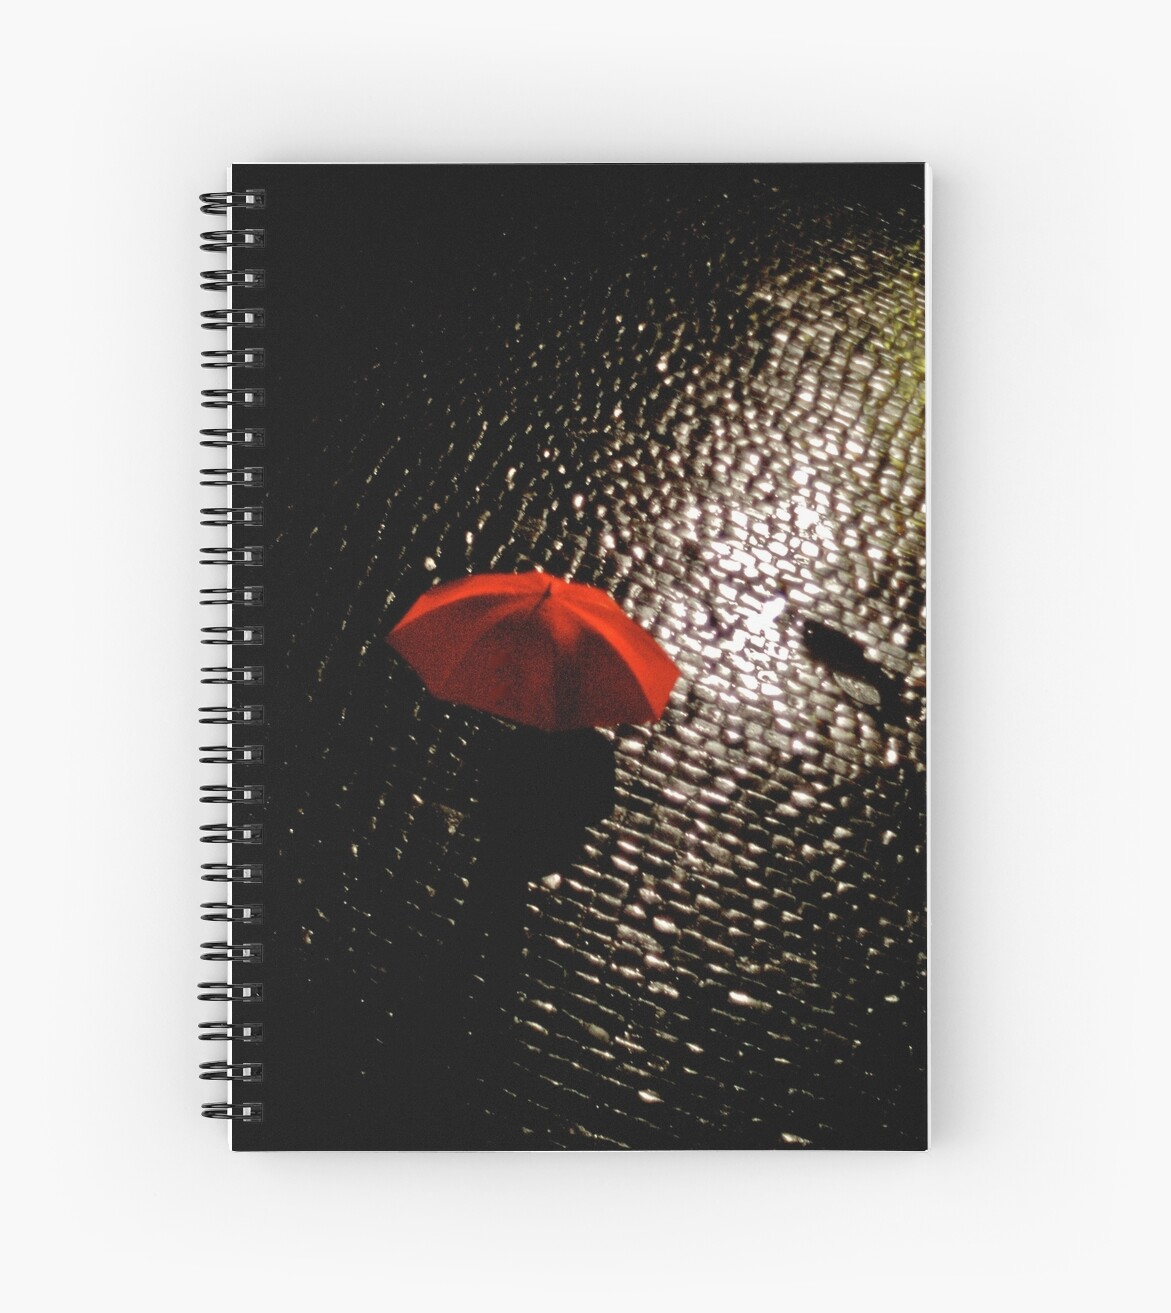 the Red Umbrella by John Armstrong-Millar